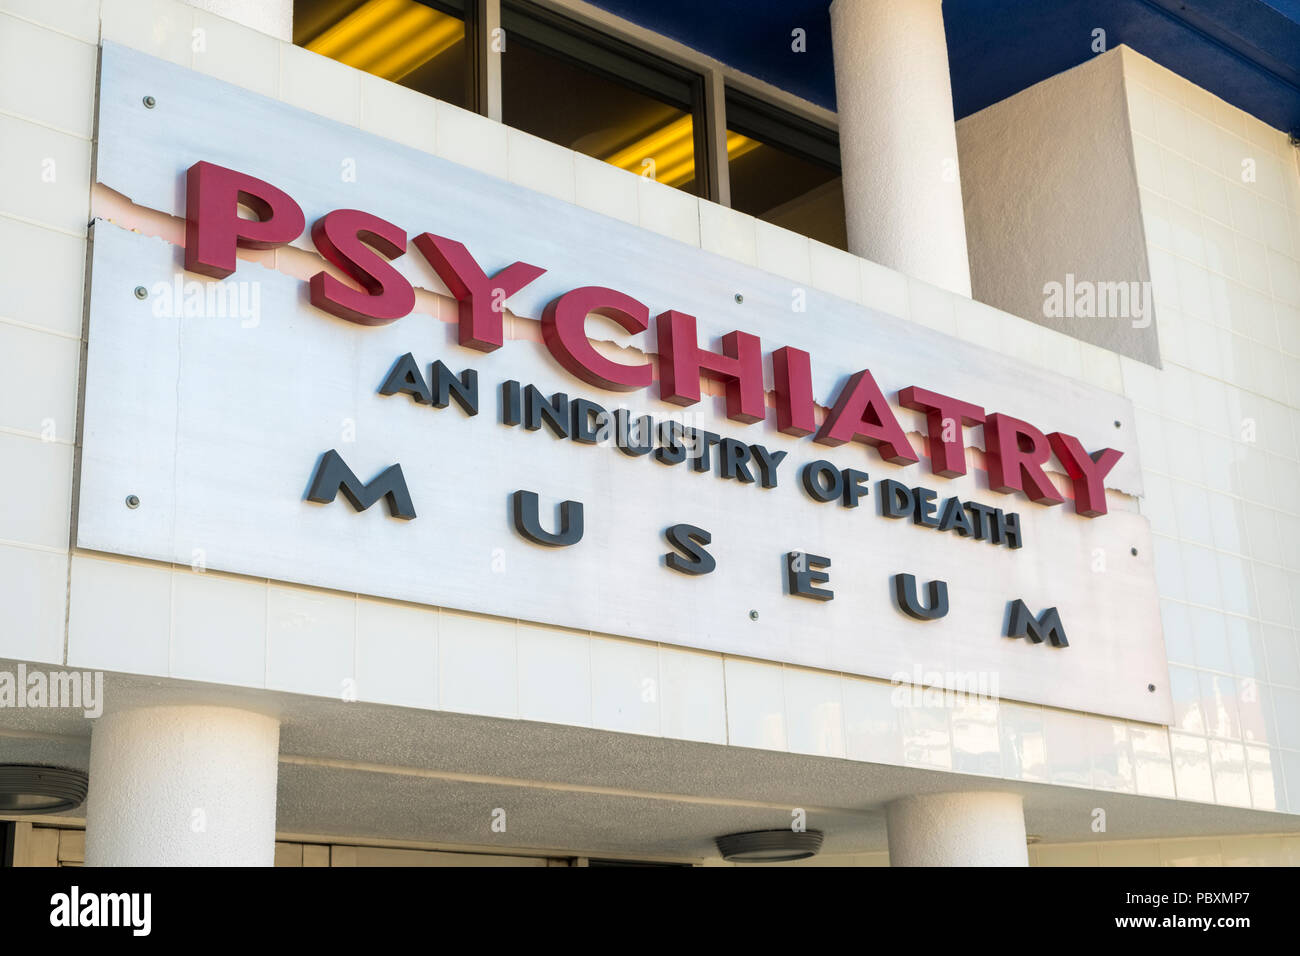 Psychiatrie eine Industrie des Todes Museum, Hollywood, Los Angeles, LA, Kalifornien, CA, USA, logo Zeichen Stockbild